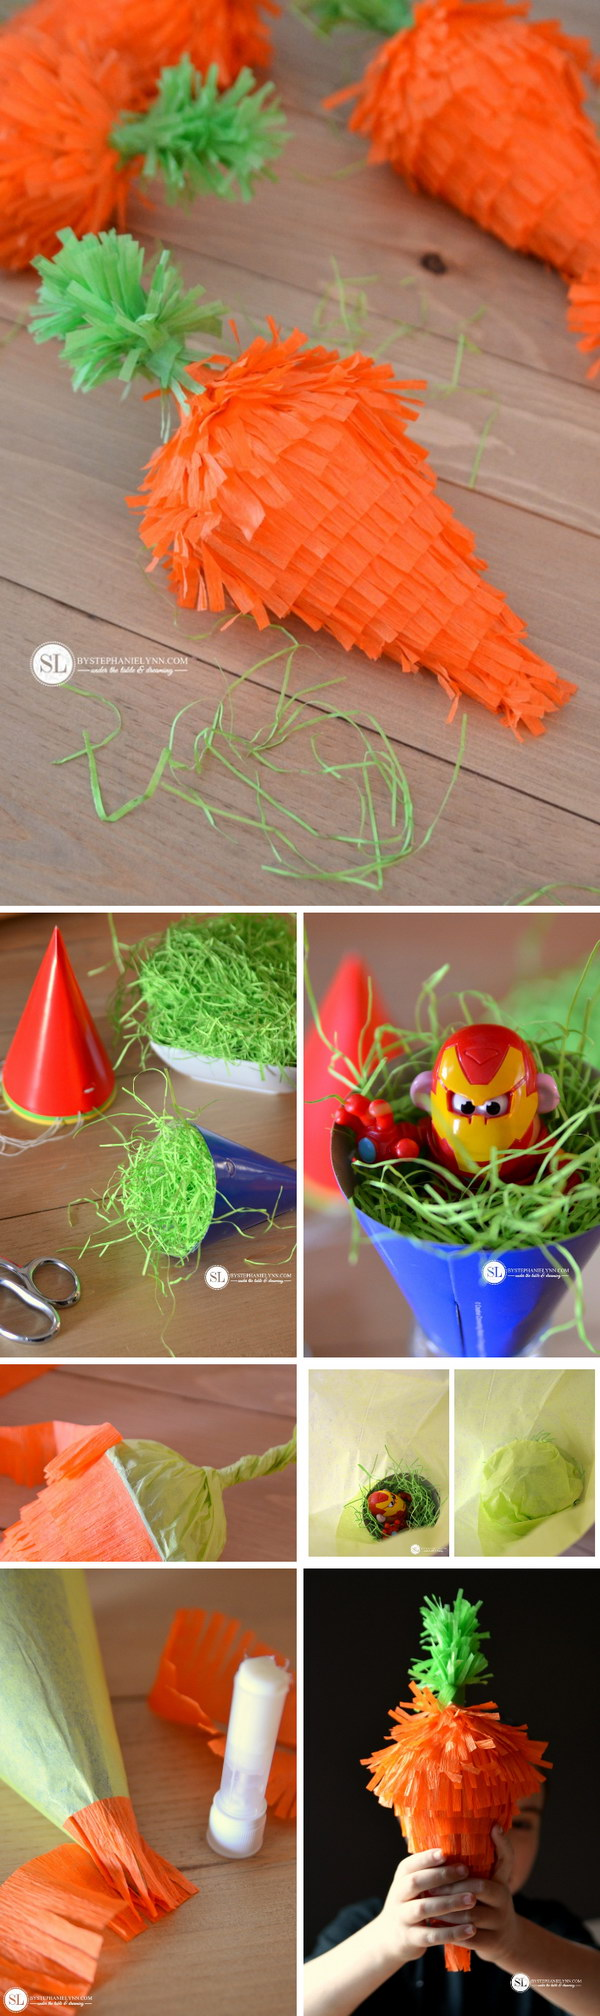 DIY Mini Easter Carrot Pinatas.